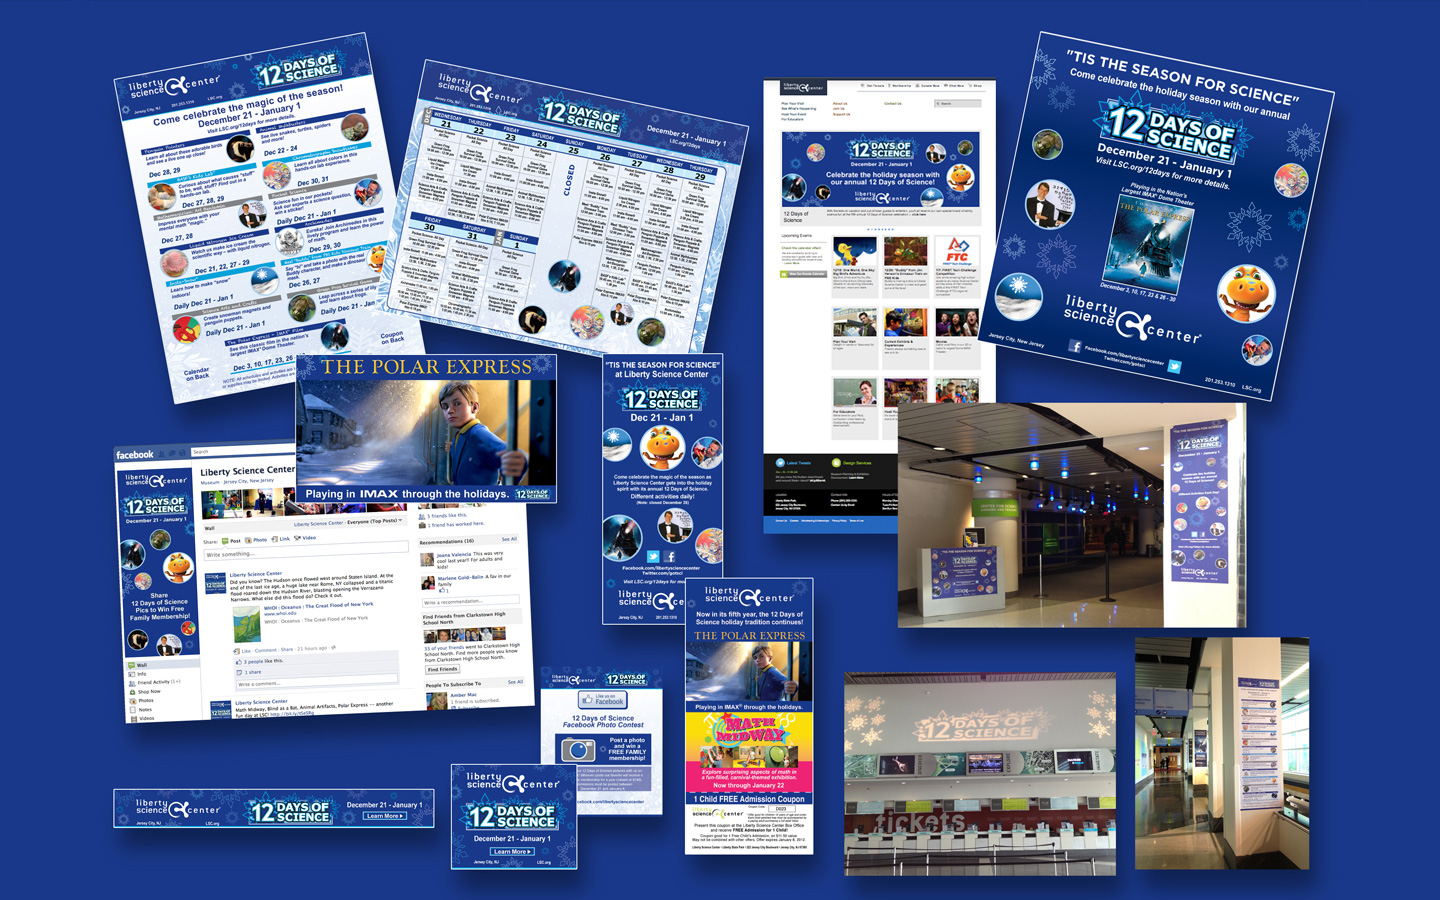 <p>Full branding, logo, and campaign materials</p>